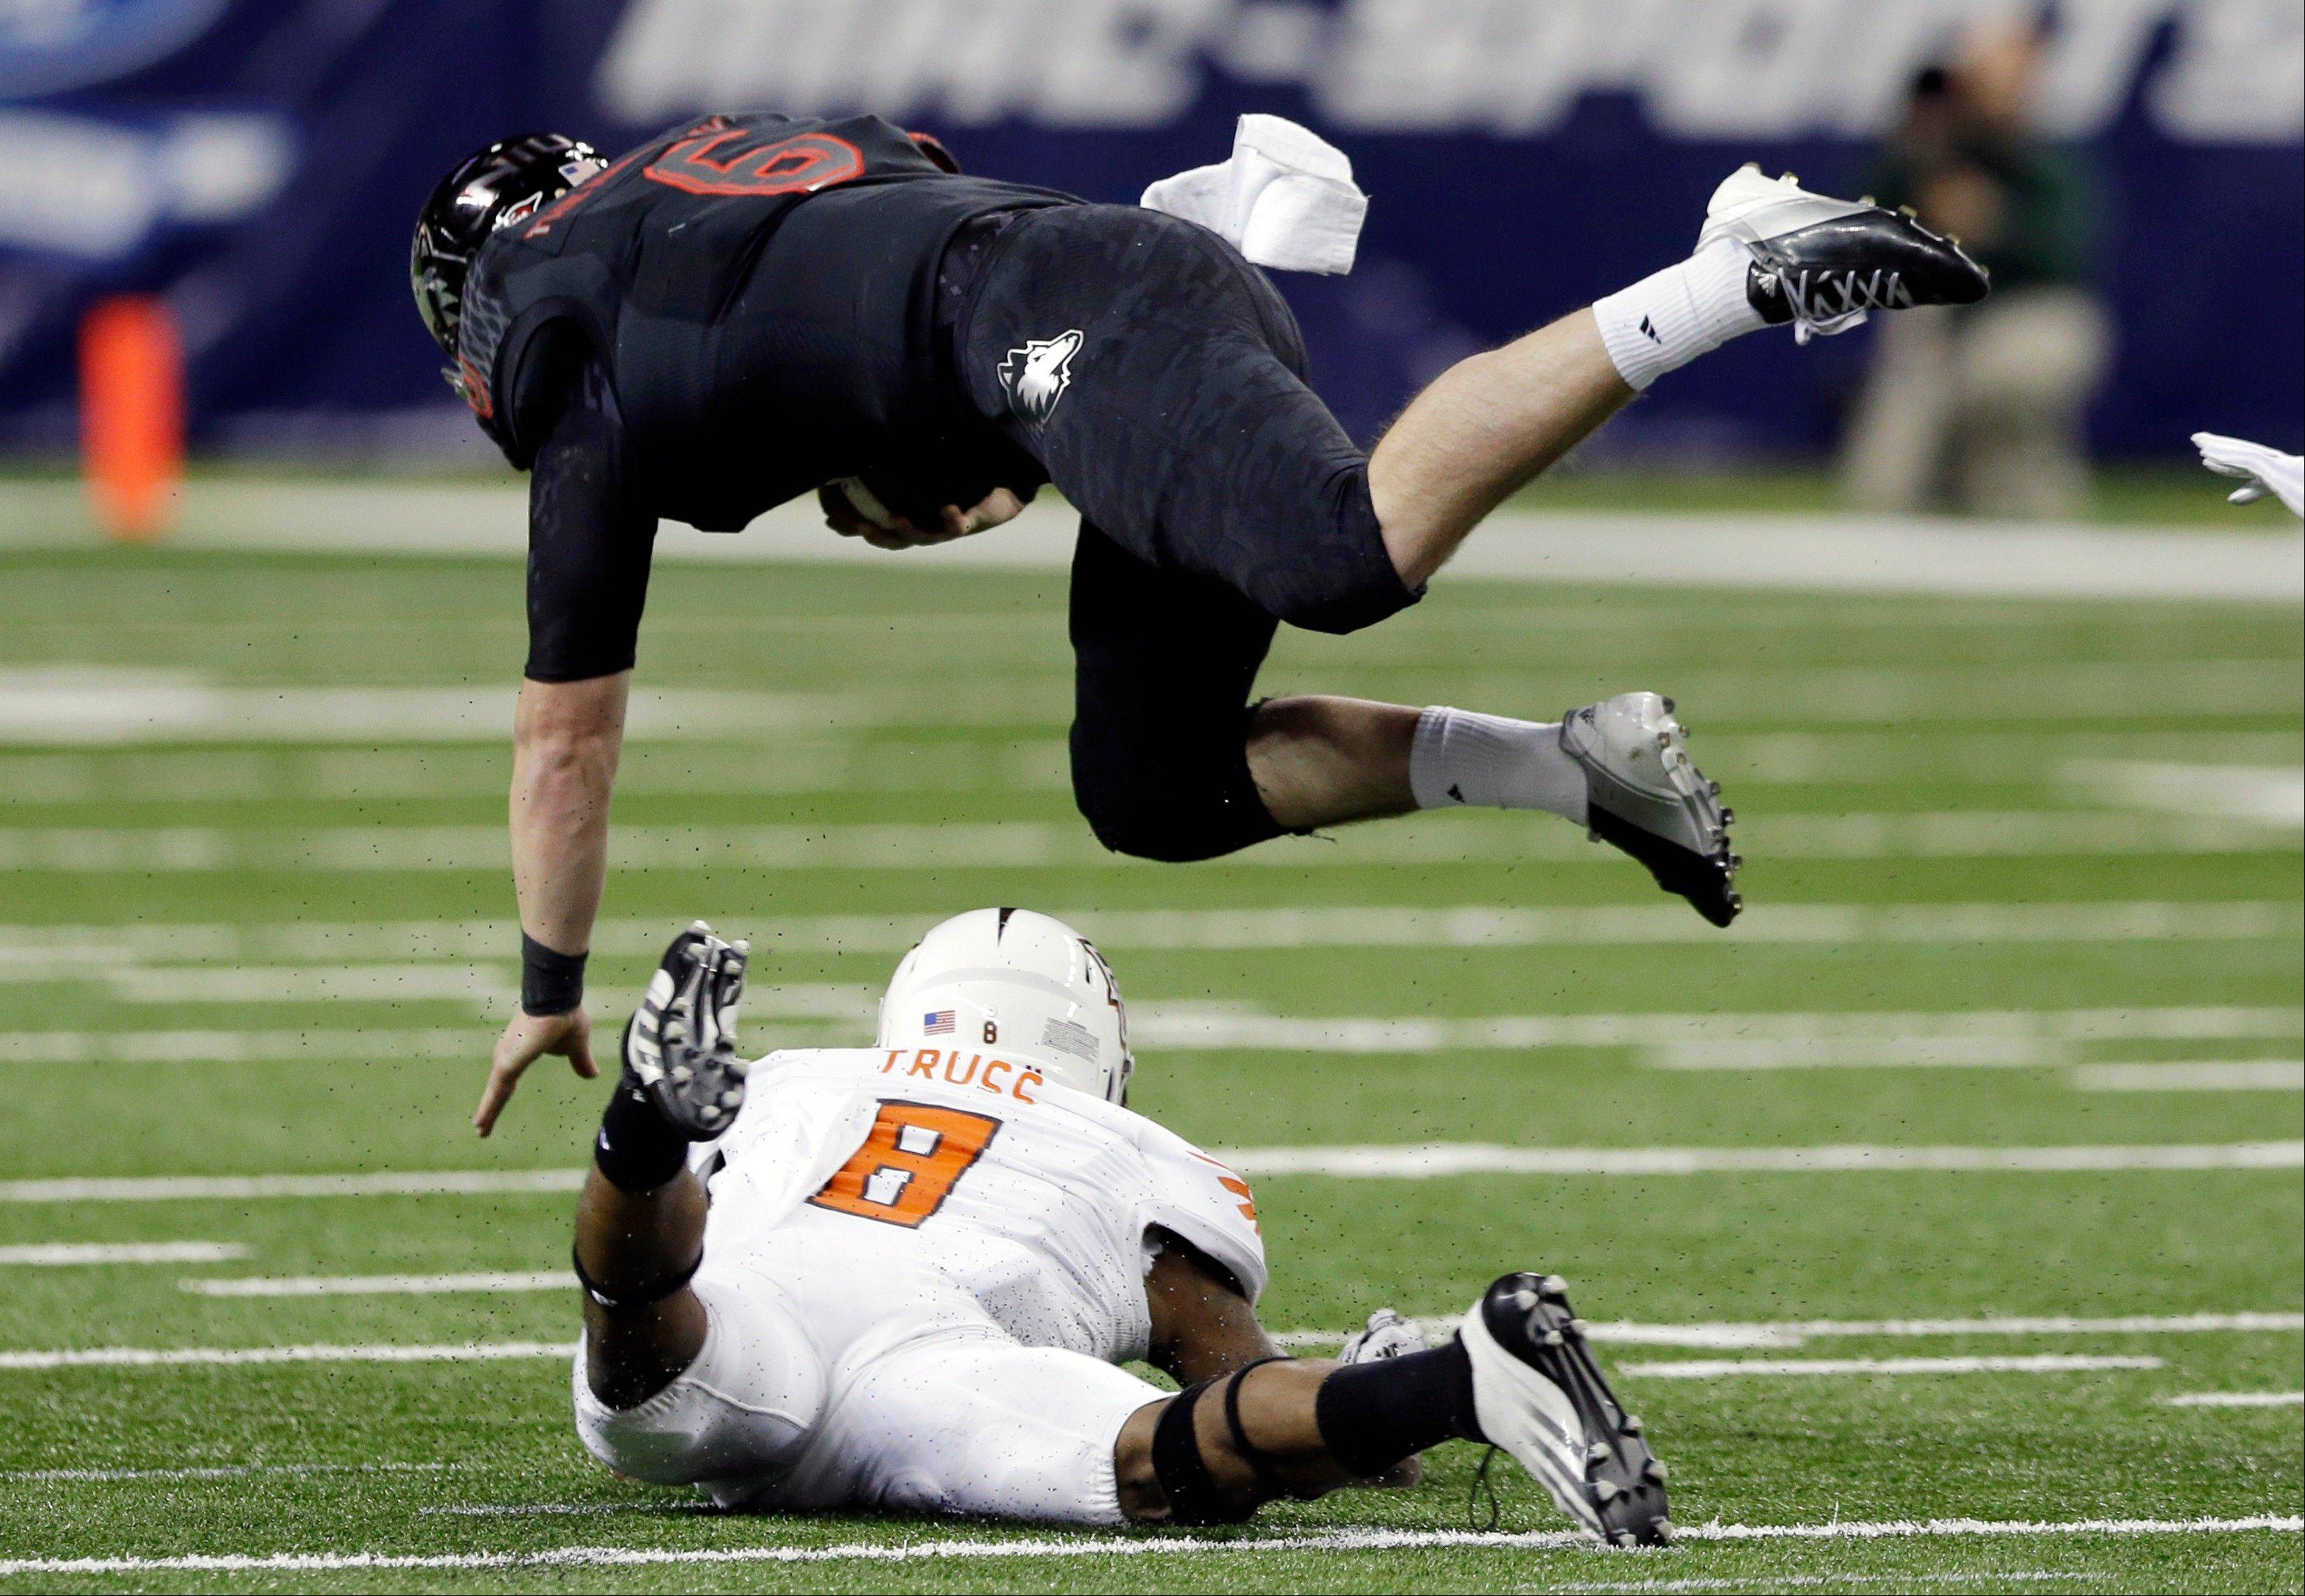 Bowling Green defensive back Cameron Truss upends Northern Illinois quarterback Jordan Lynch during the first half of the Mid-American Conference championship game Friday in Detroit.